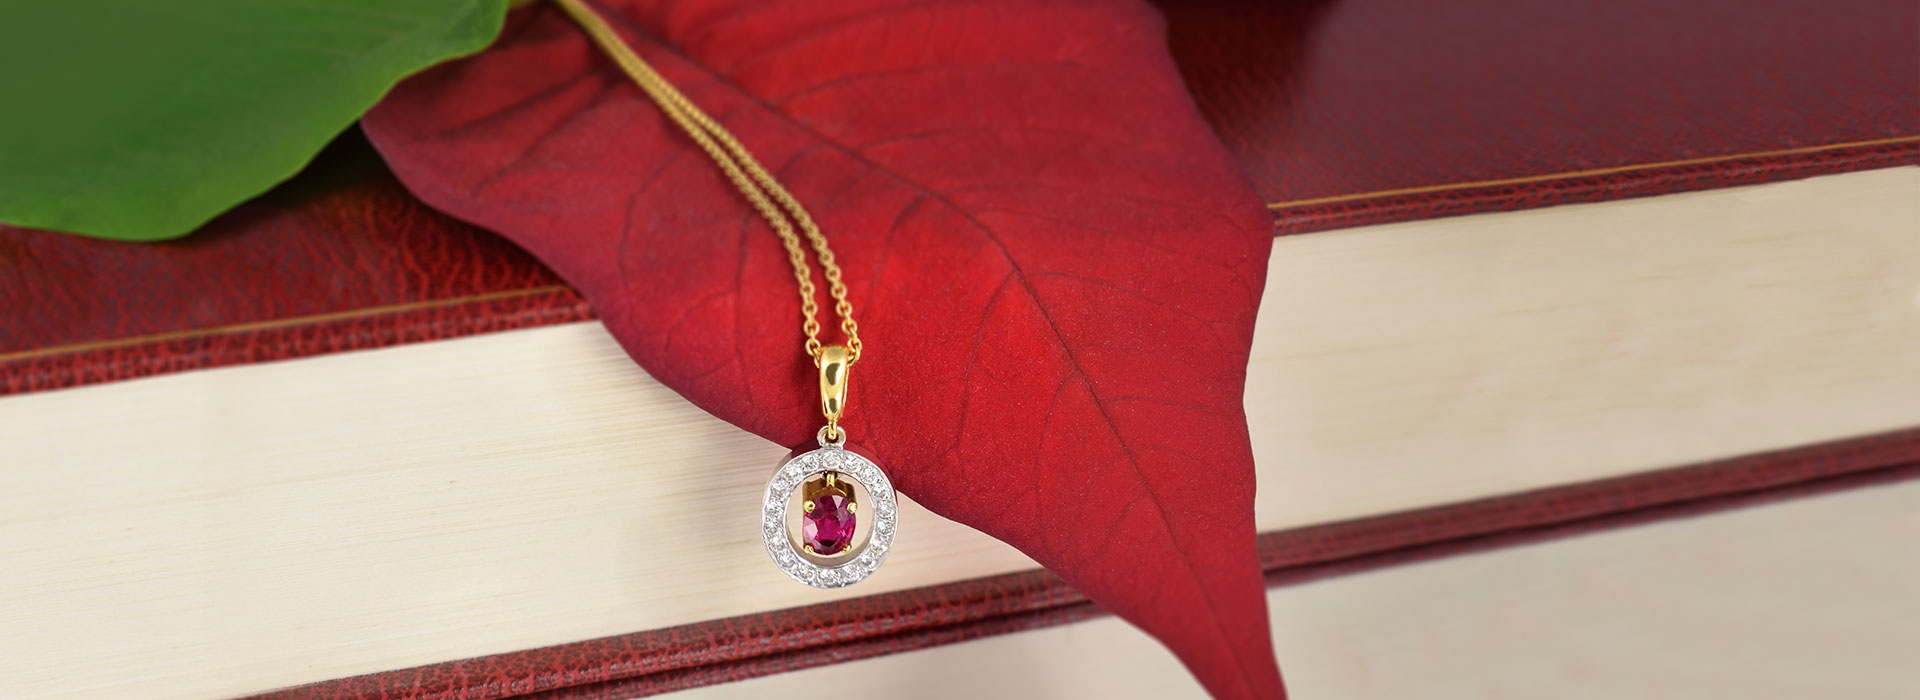 Ruby Diamond Necklace Gold Books Leafs